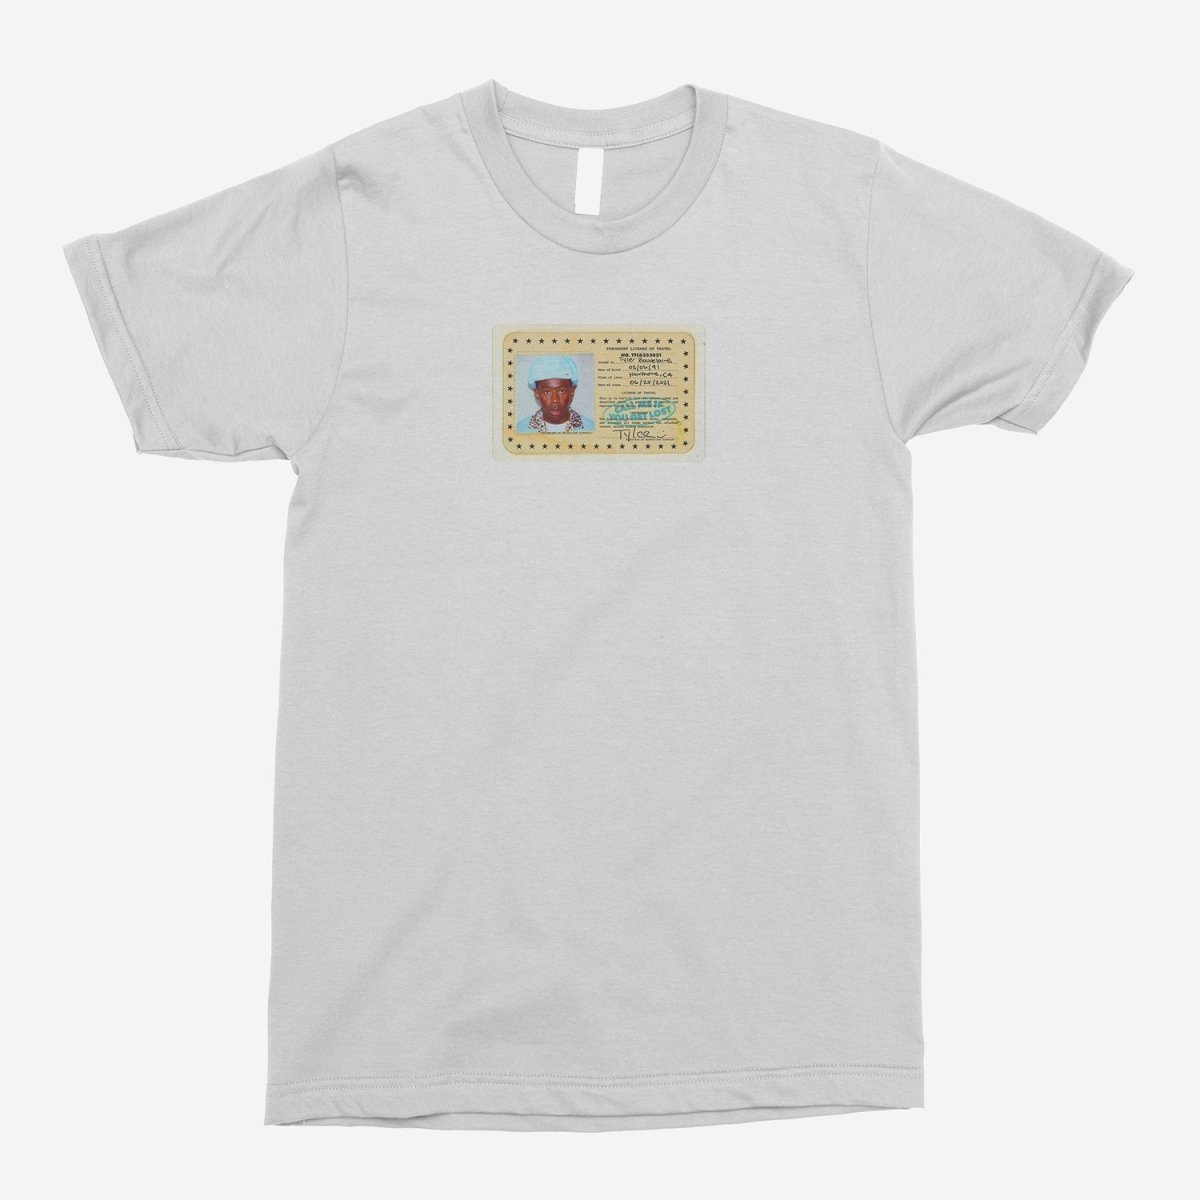 Tyler, The Creator - Call Me If You Get Lost (ID Card) Unisex T-Shirt